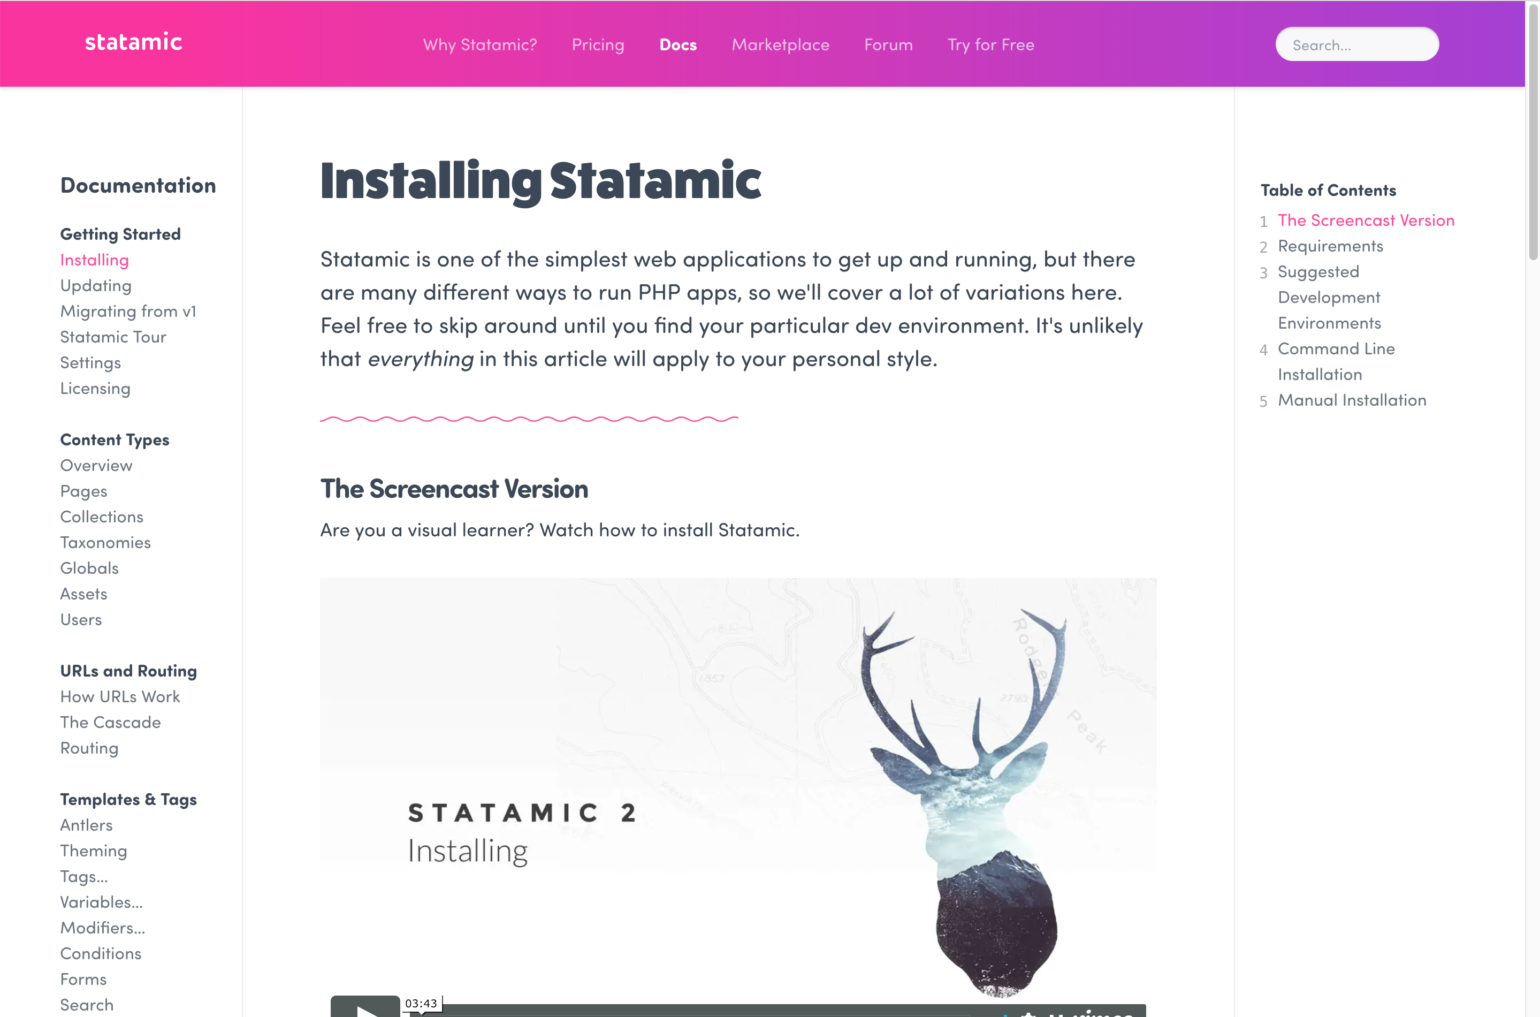 Statamic documentation